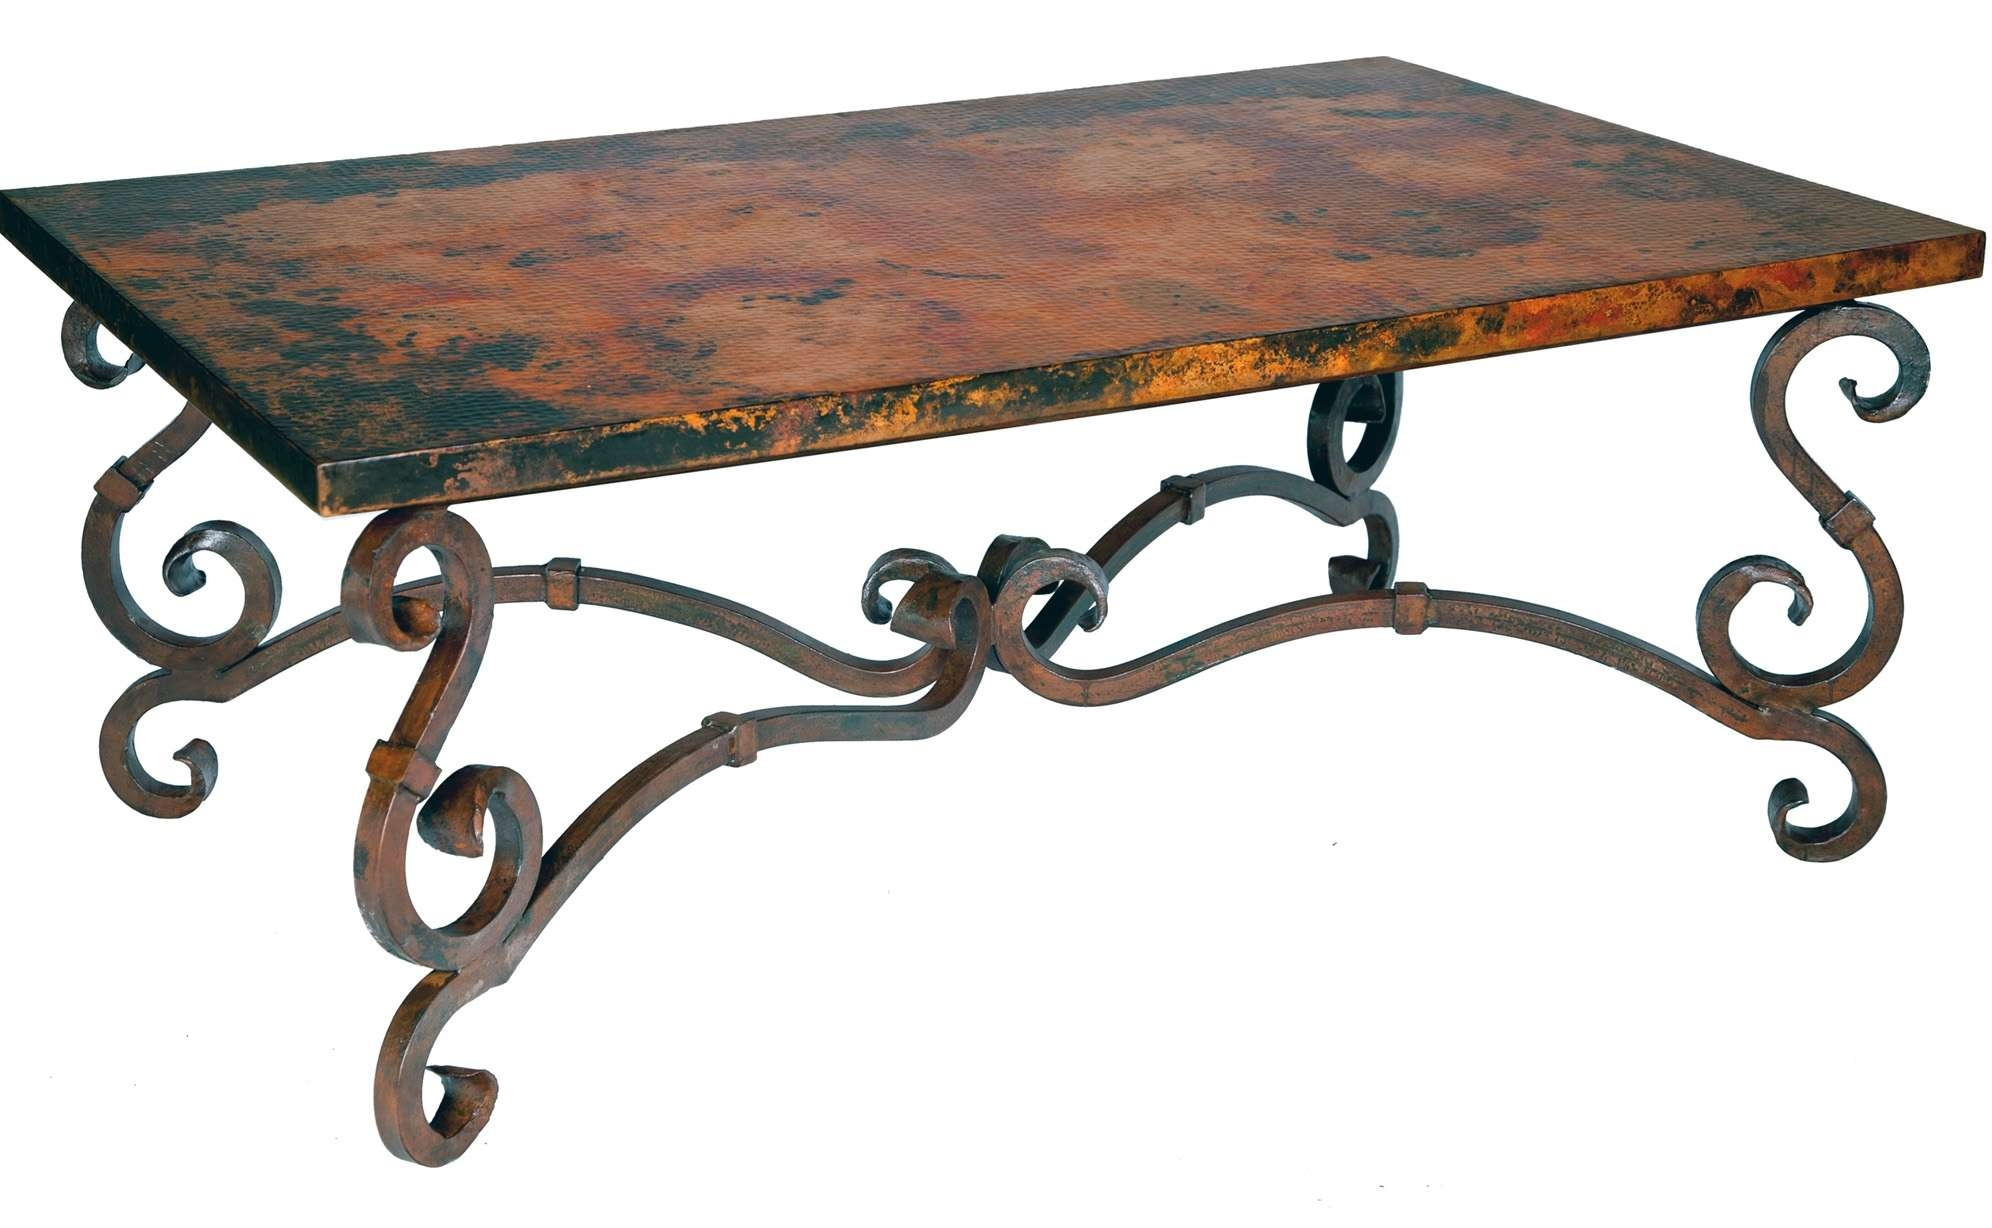 Wrought Iron Coffee Table With Glass And Wooden Round With Regard To Best And Newest Wrought Iron Coffee Tables (View 20 of 20)